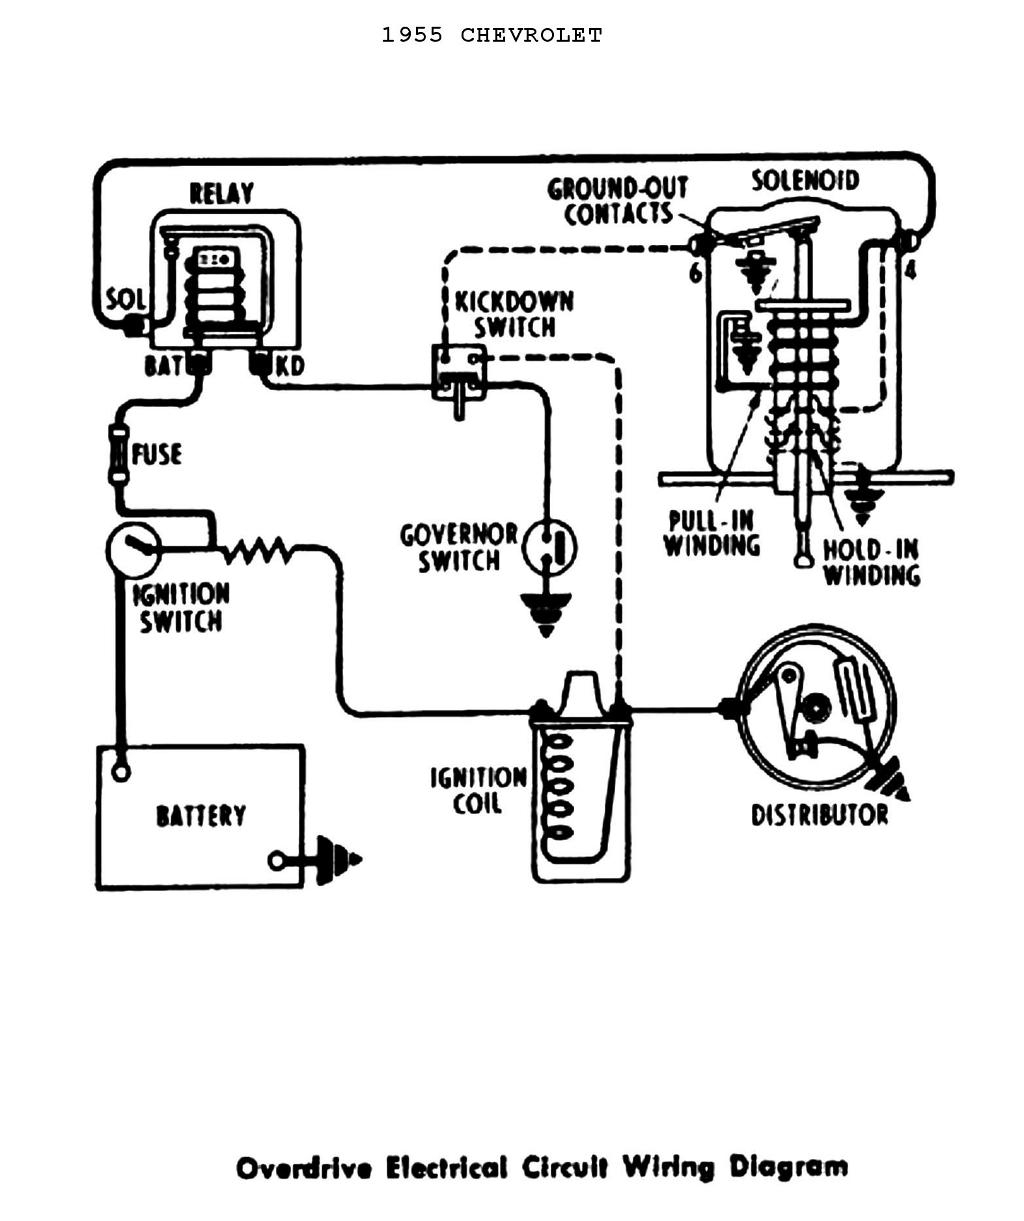 hight resolution of hei distributor wiring diagram free wiring diagramhei distributor wiring diagram gm hei distributor wiring schematic download